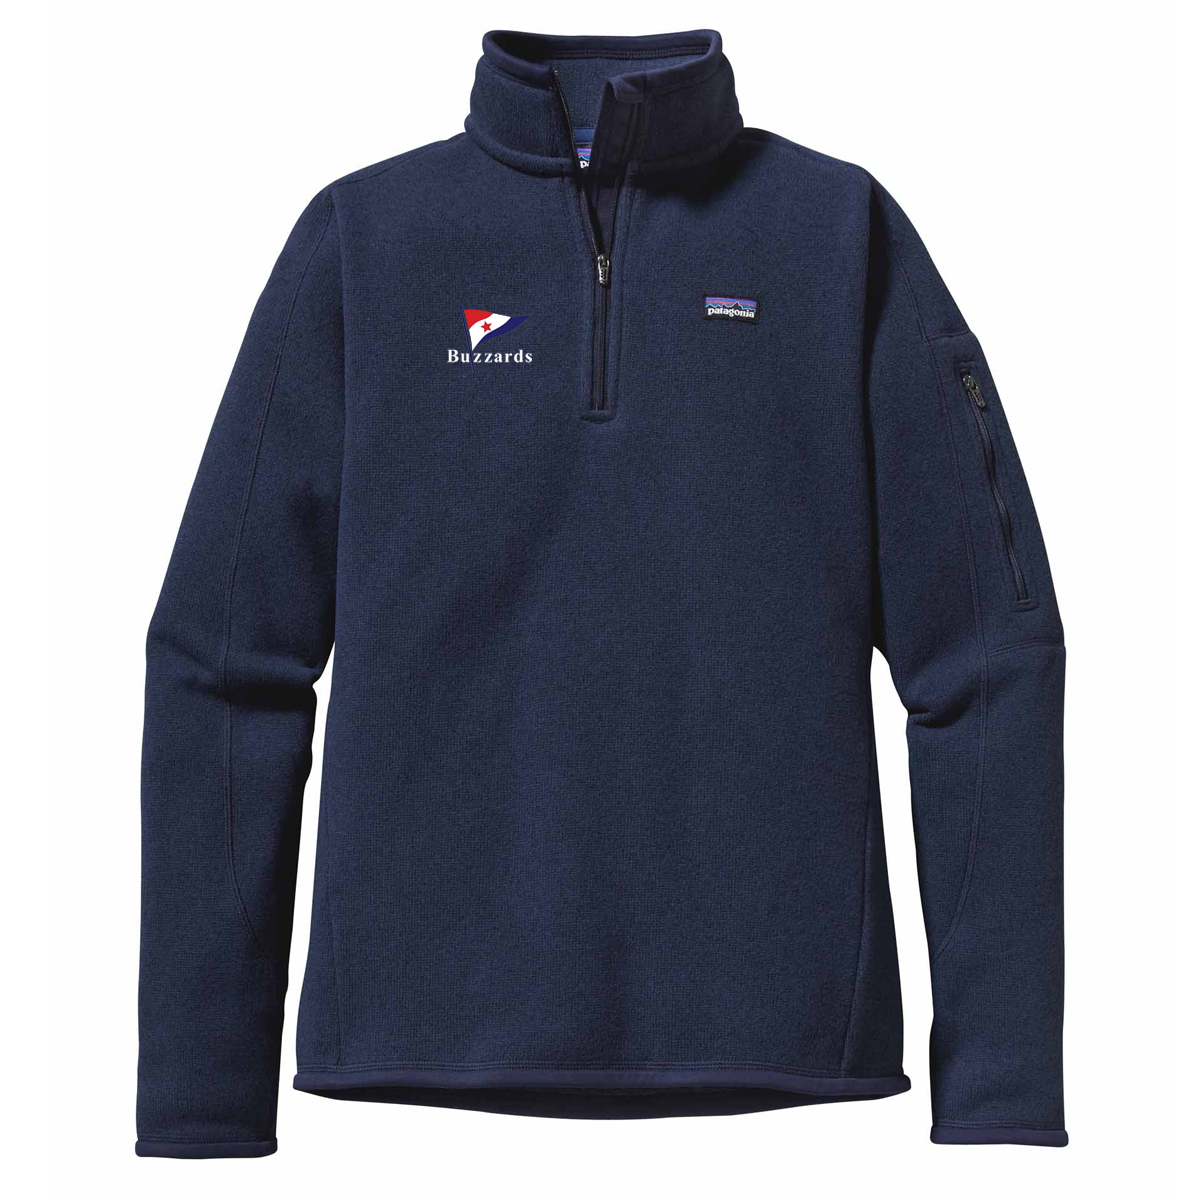 BUZZARDS YC - W'S PATAGONIA 1/4 ZIP BETTER SWEATER